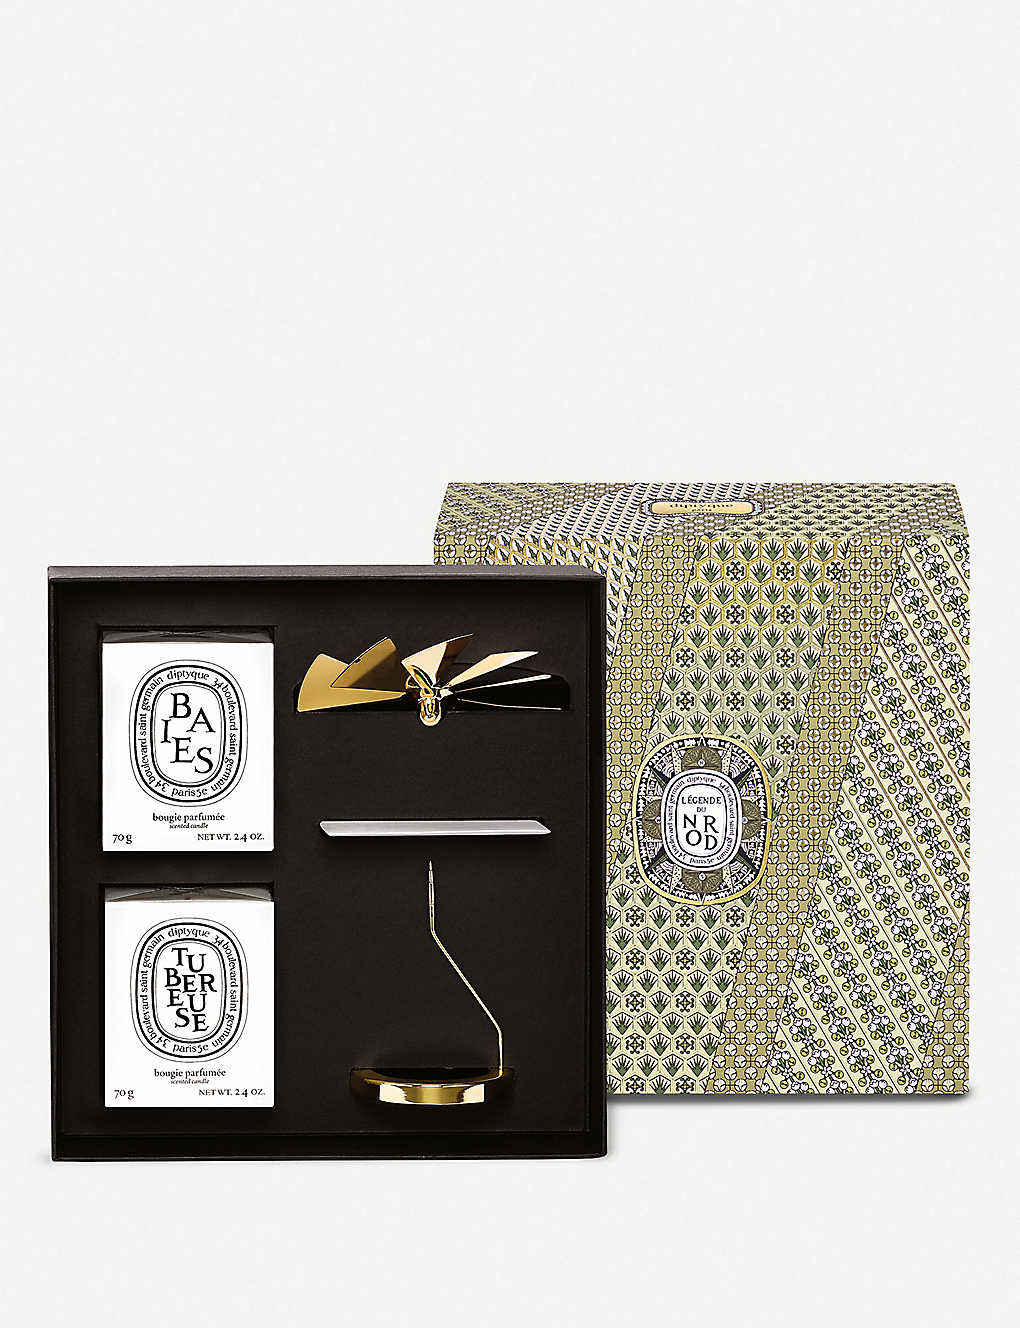 c202cac7b29 DIPTYQUE - Carousel and scented candle set